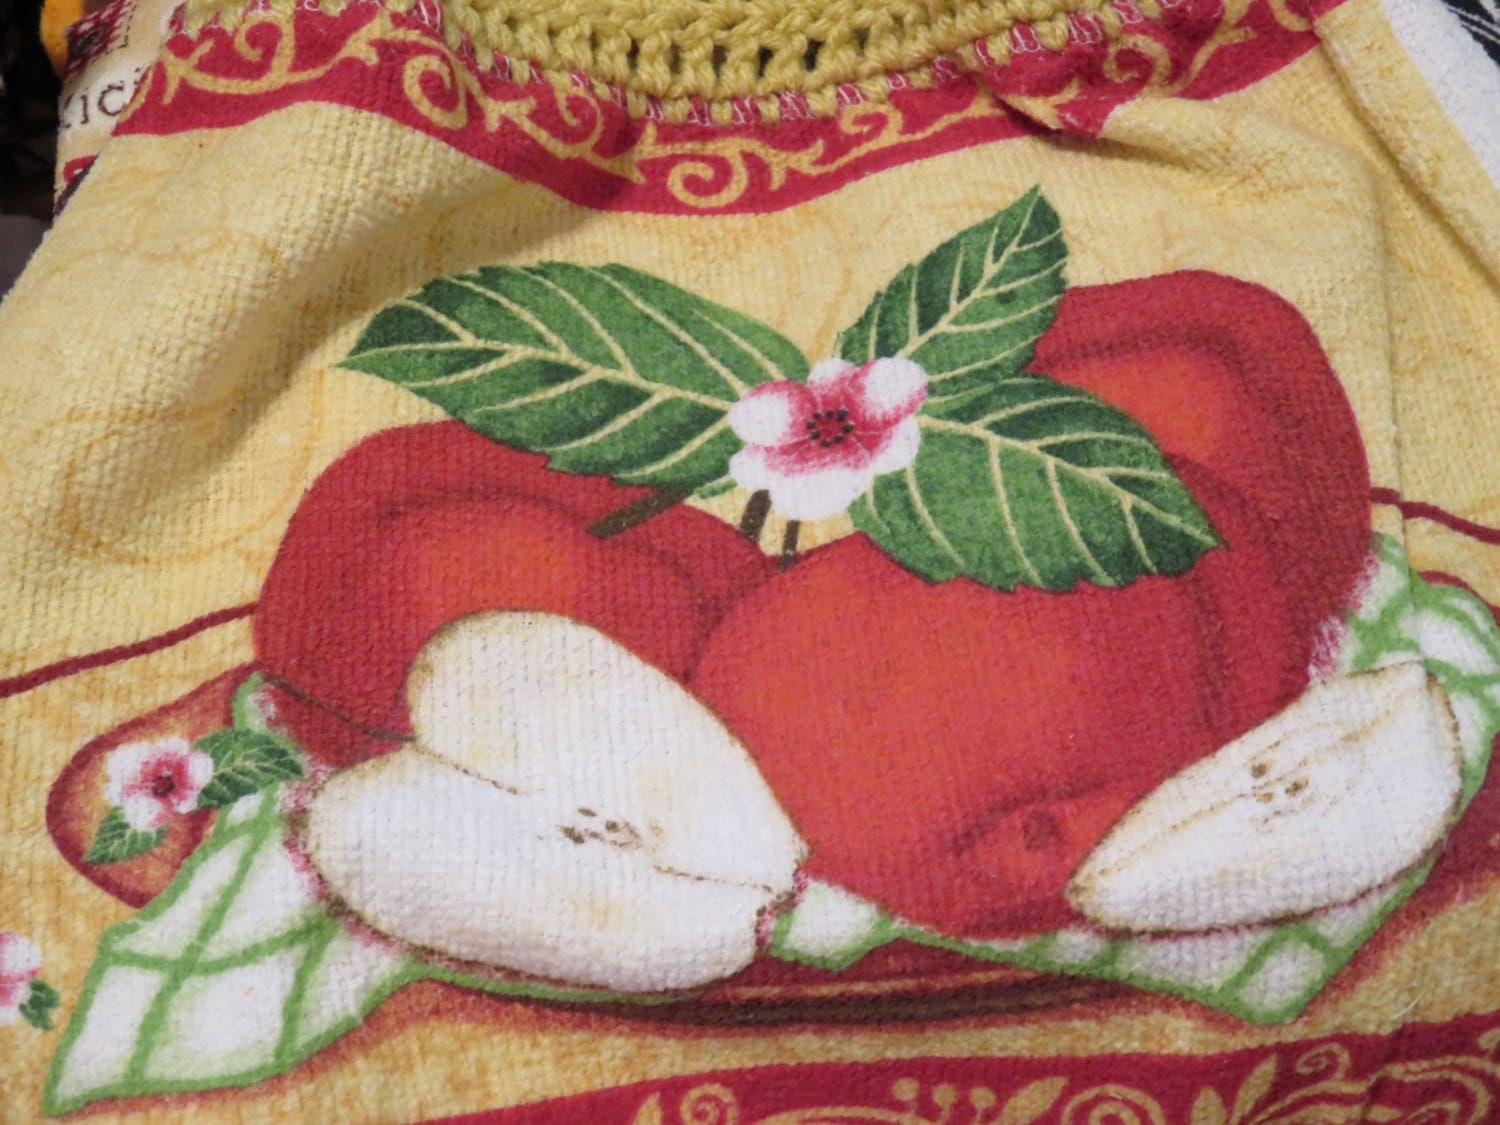 Apples,Crocheted,Top,Kitchen,Towel,Housewares,towel,kitchen_towel,kitchen_linen,for_your_home,crocheted_top_towel,crocheted_topper,tablelinen,table_linen,kitchen_rooster,apple_towel,country_apple_design,apples,crochet_apple_towel,terry cloth,yarn,button